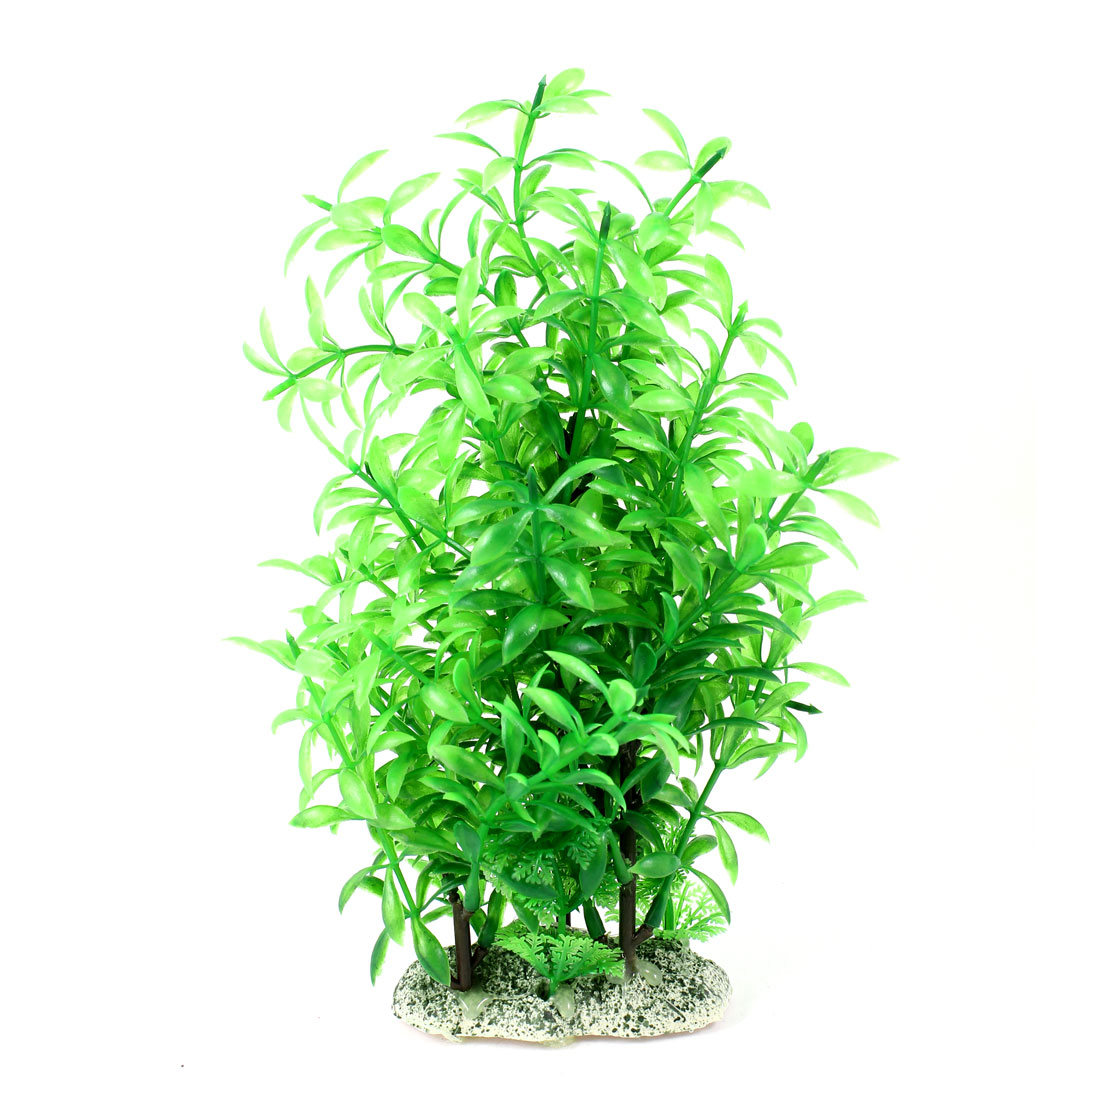 "Aquarium Fish Tank Ornament Landscaping Artificial Emulational Underwater Water Plant Grass Decor Green 9"" Height"